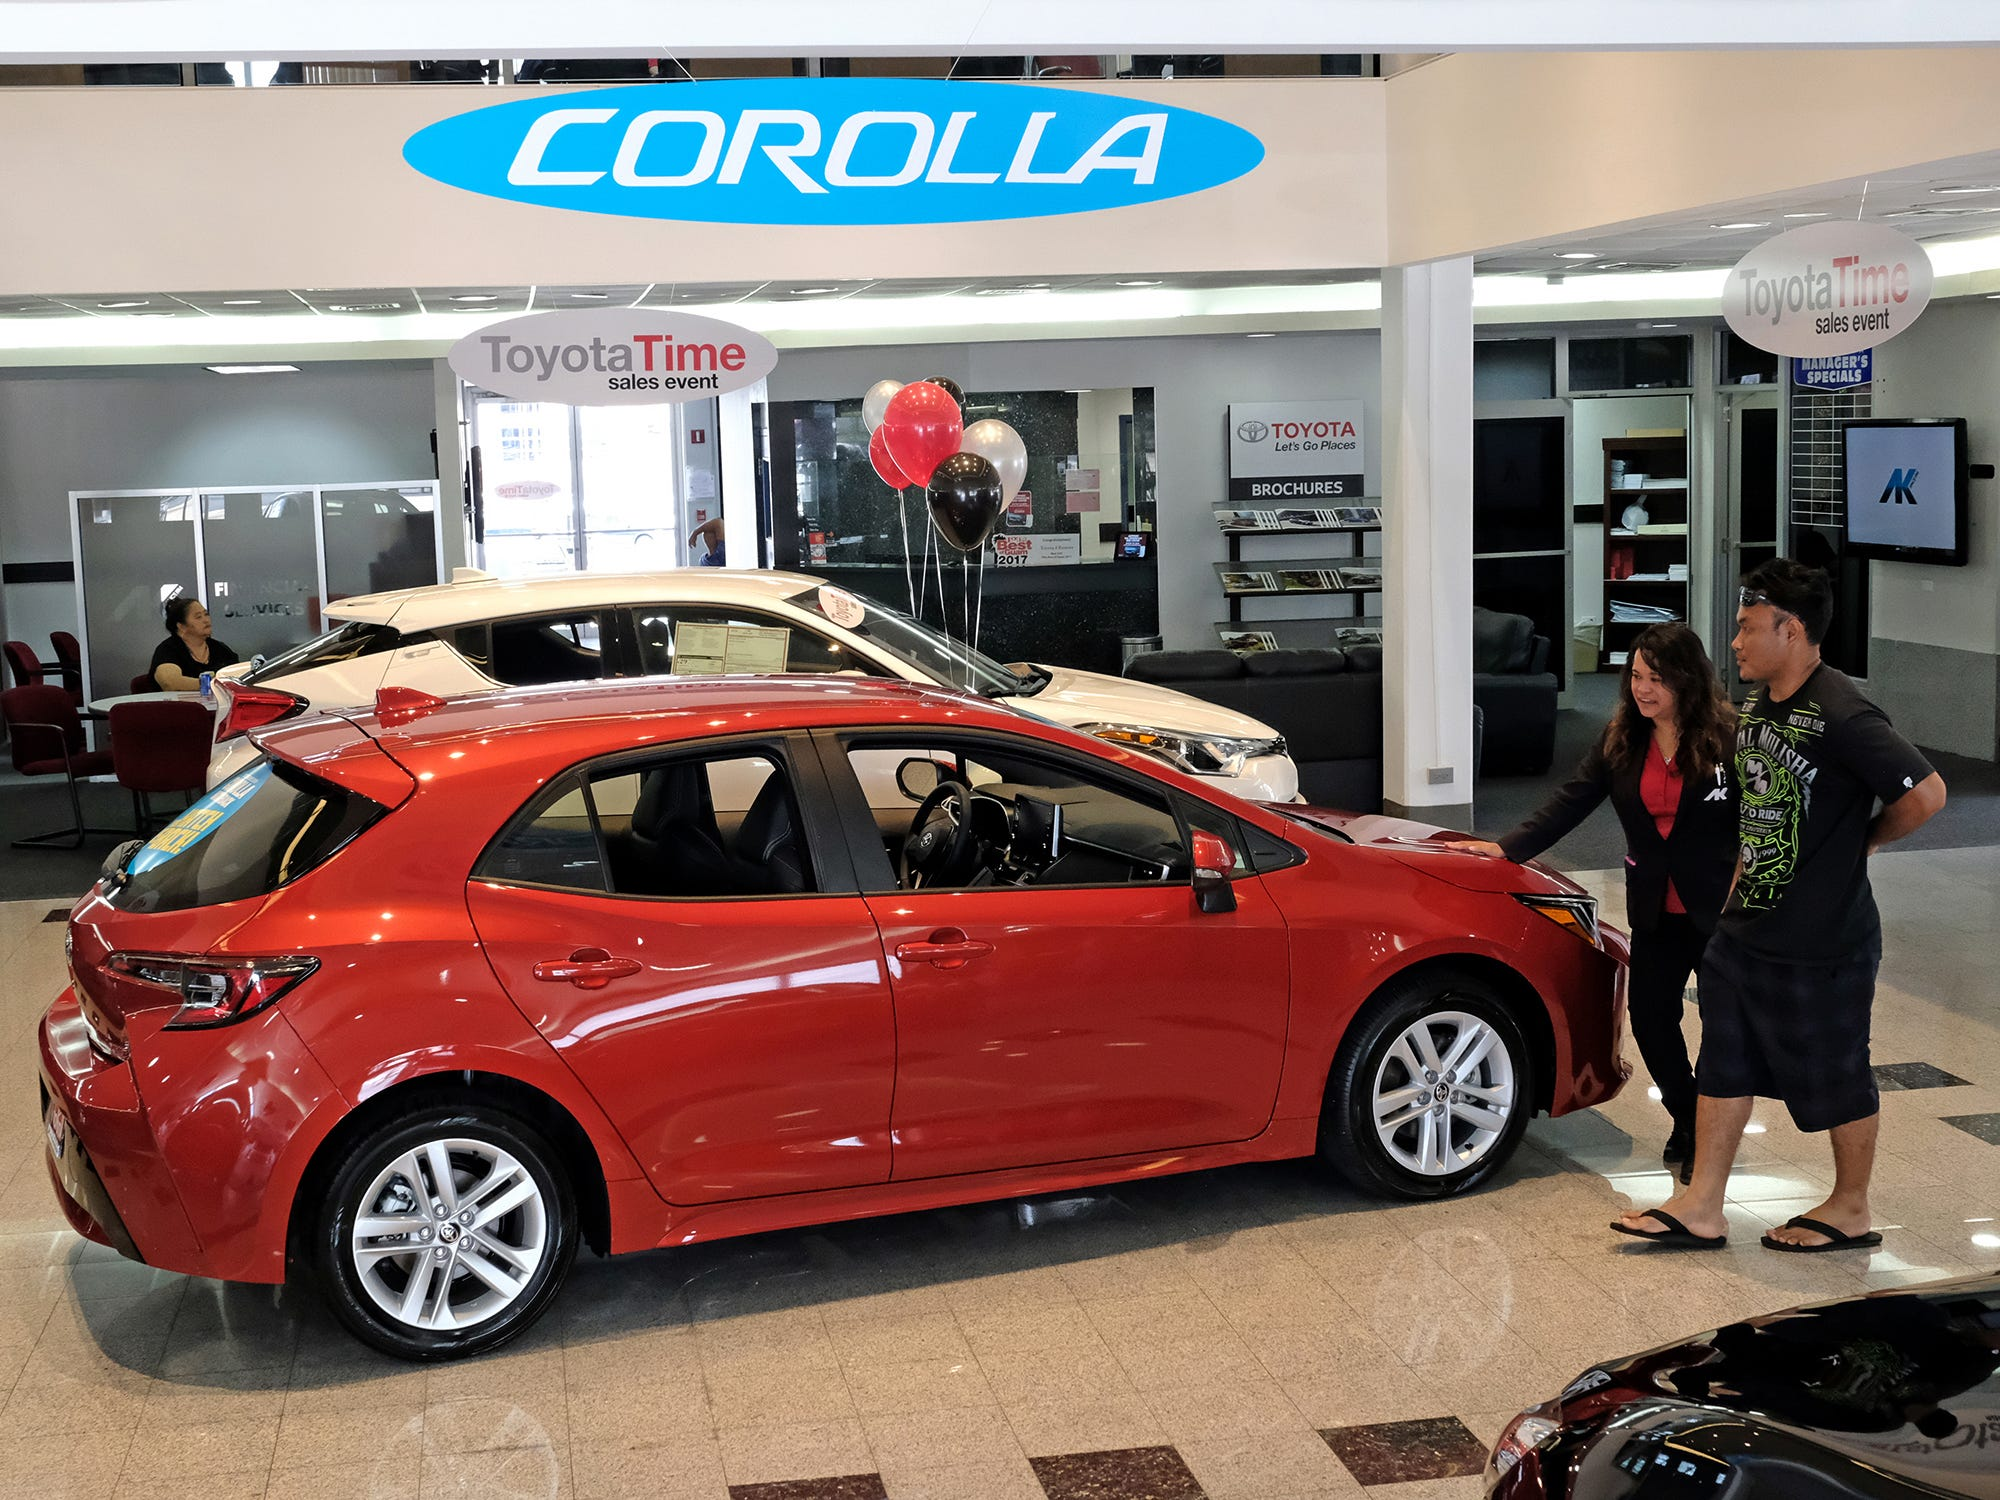 Atkins Kroll Toyota sales associate Mona Cing shows the 2019 Toyota Corolla hatchback to Andrew Milfith of Tamuning in the showroom Sept. 8, 2018.